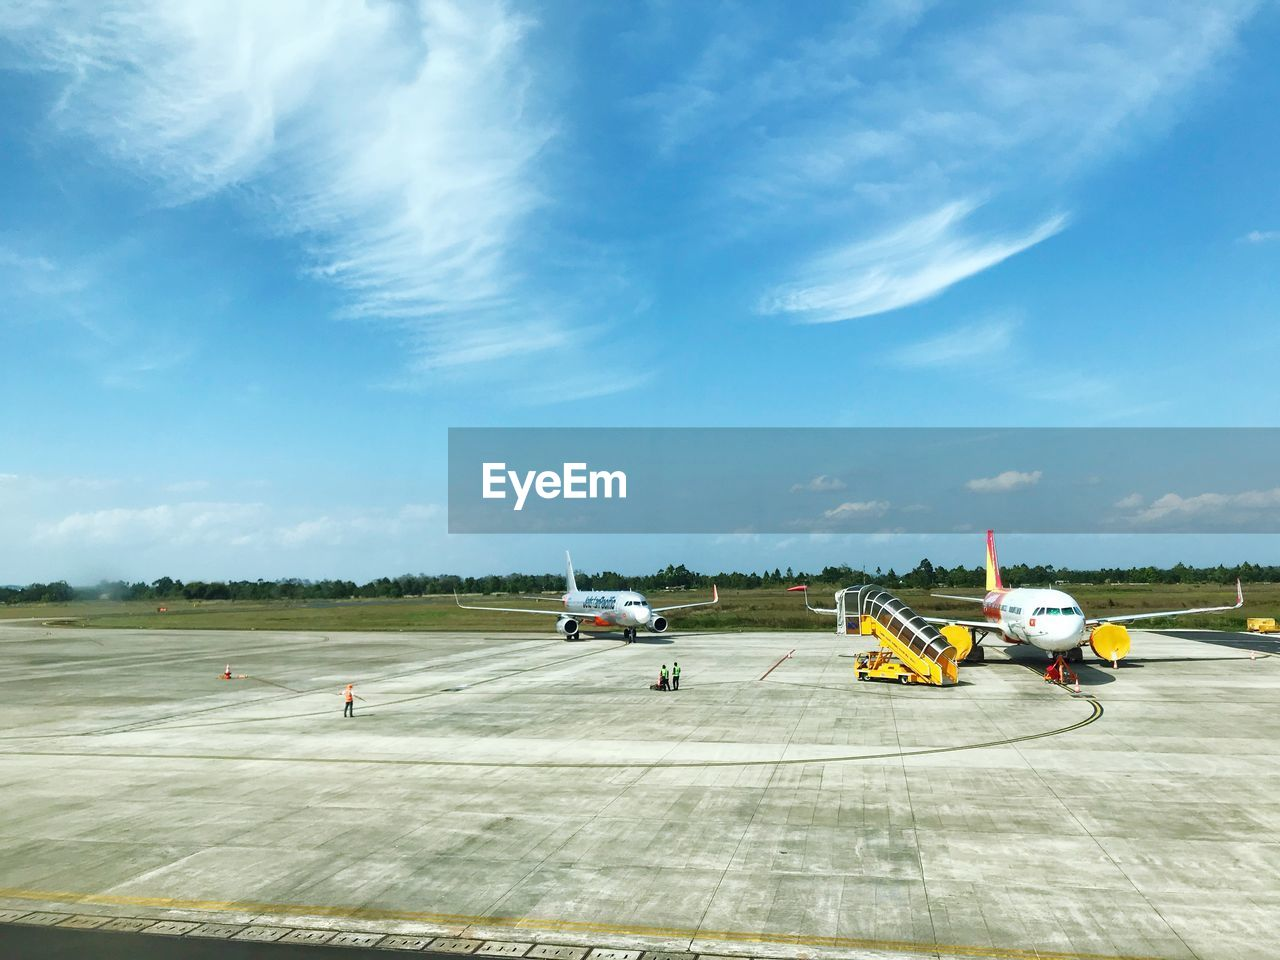 sky, air vehicle, transportation, airport, airplane, cloud - sky, airport runway, day, mode of transportation, group of people, real people, nature, outdoors, travel, road, sunlight, runway, cone, occupation, aerospace industry